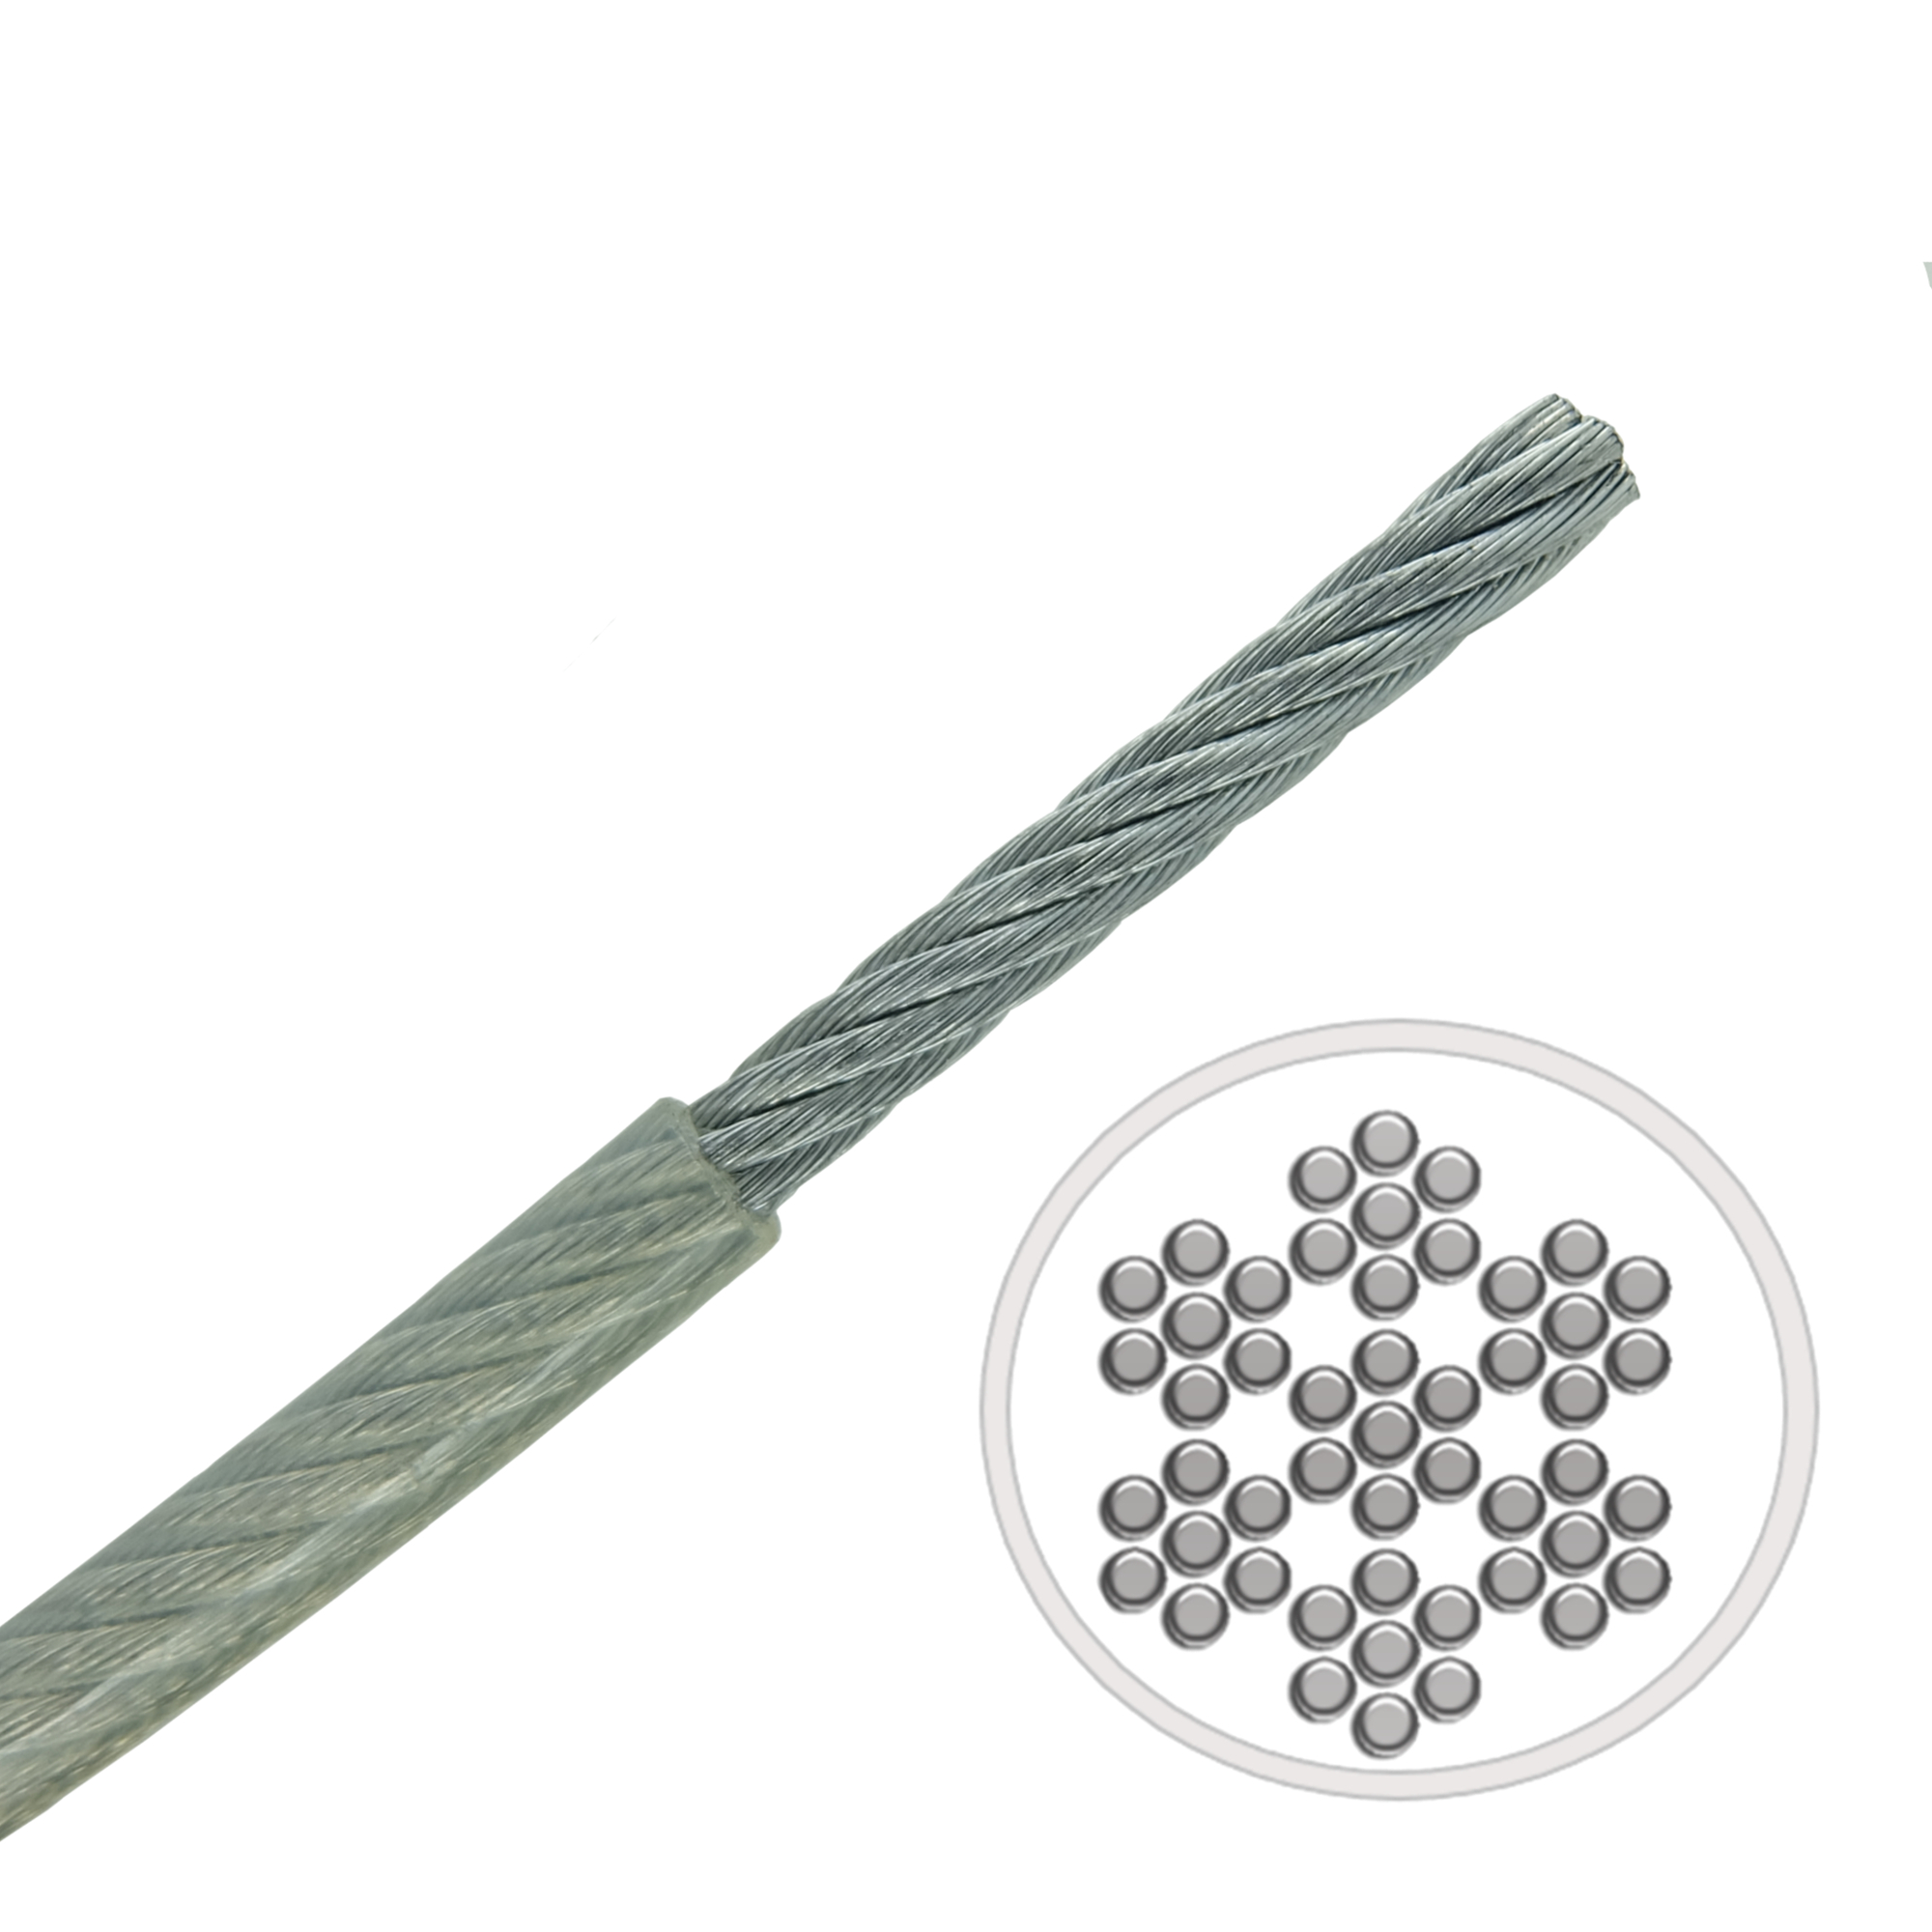 0 9mm 7x7 A4 Aisi 316 Stainless Steel Cable Mbl 52kgs